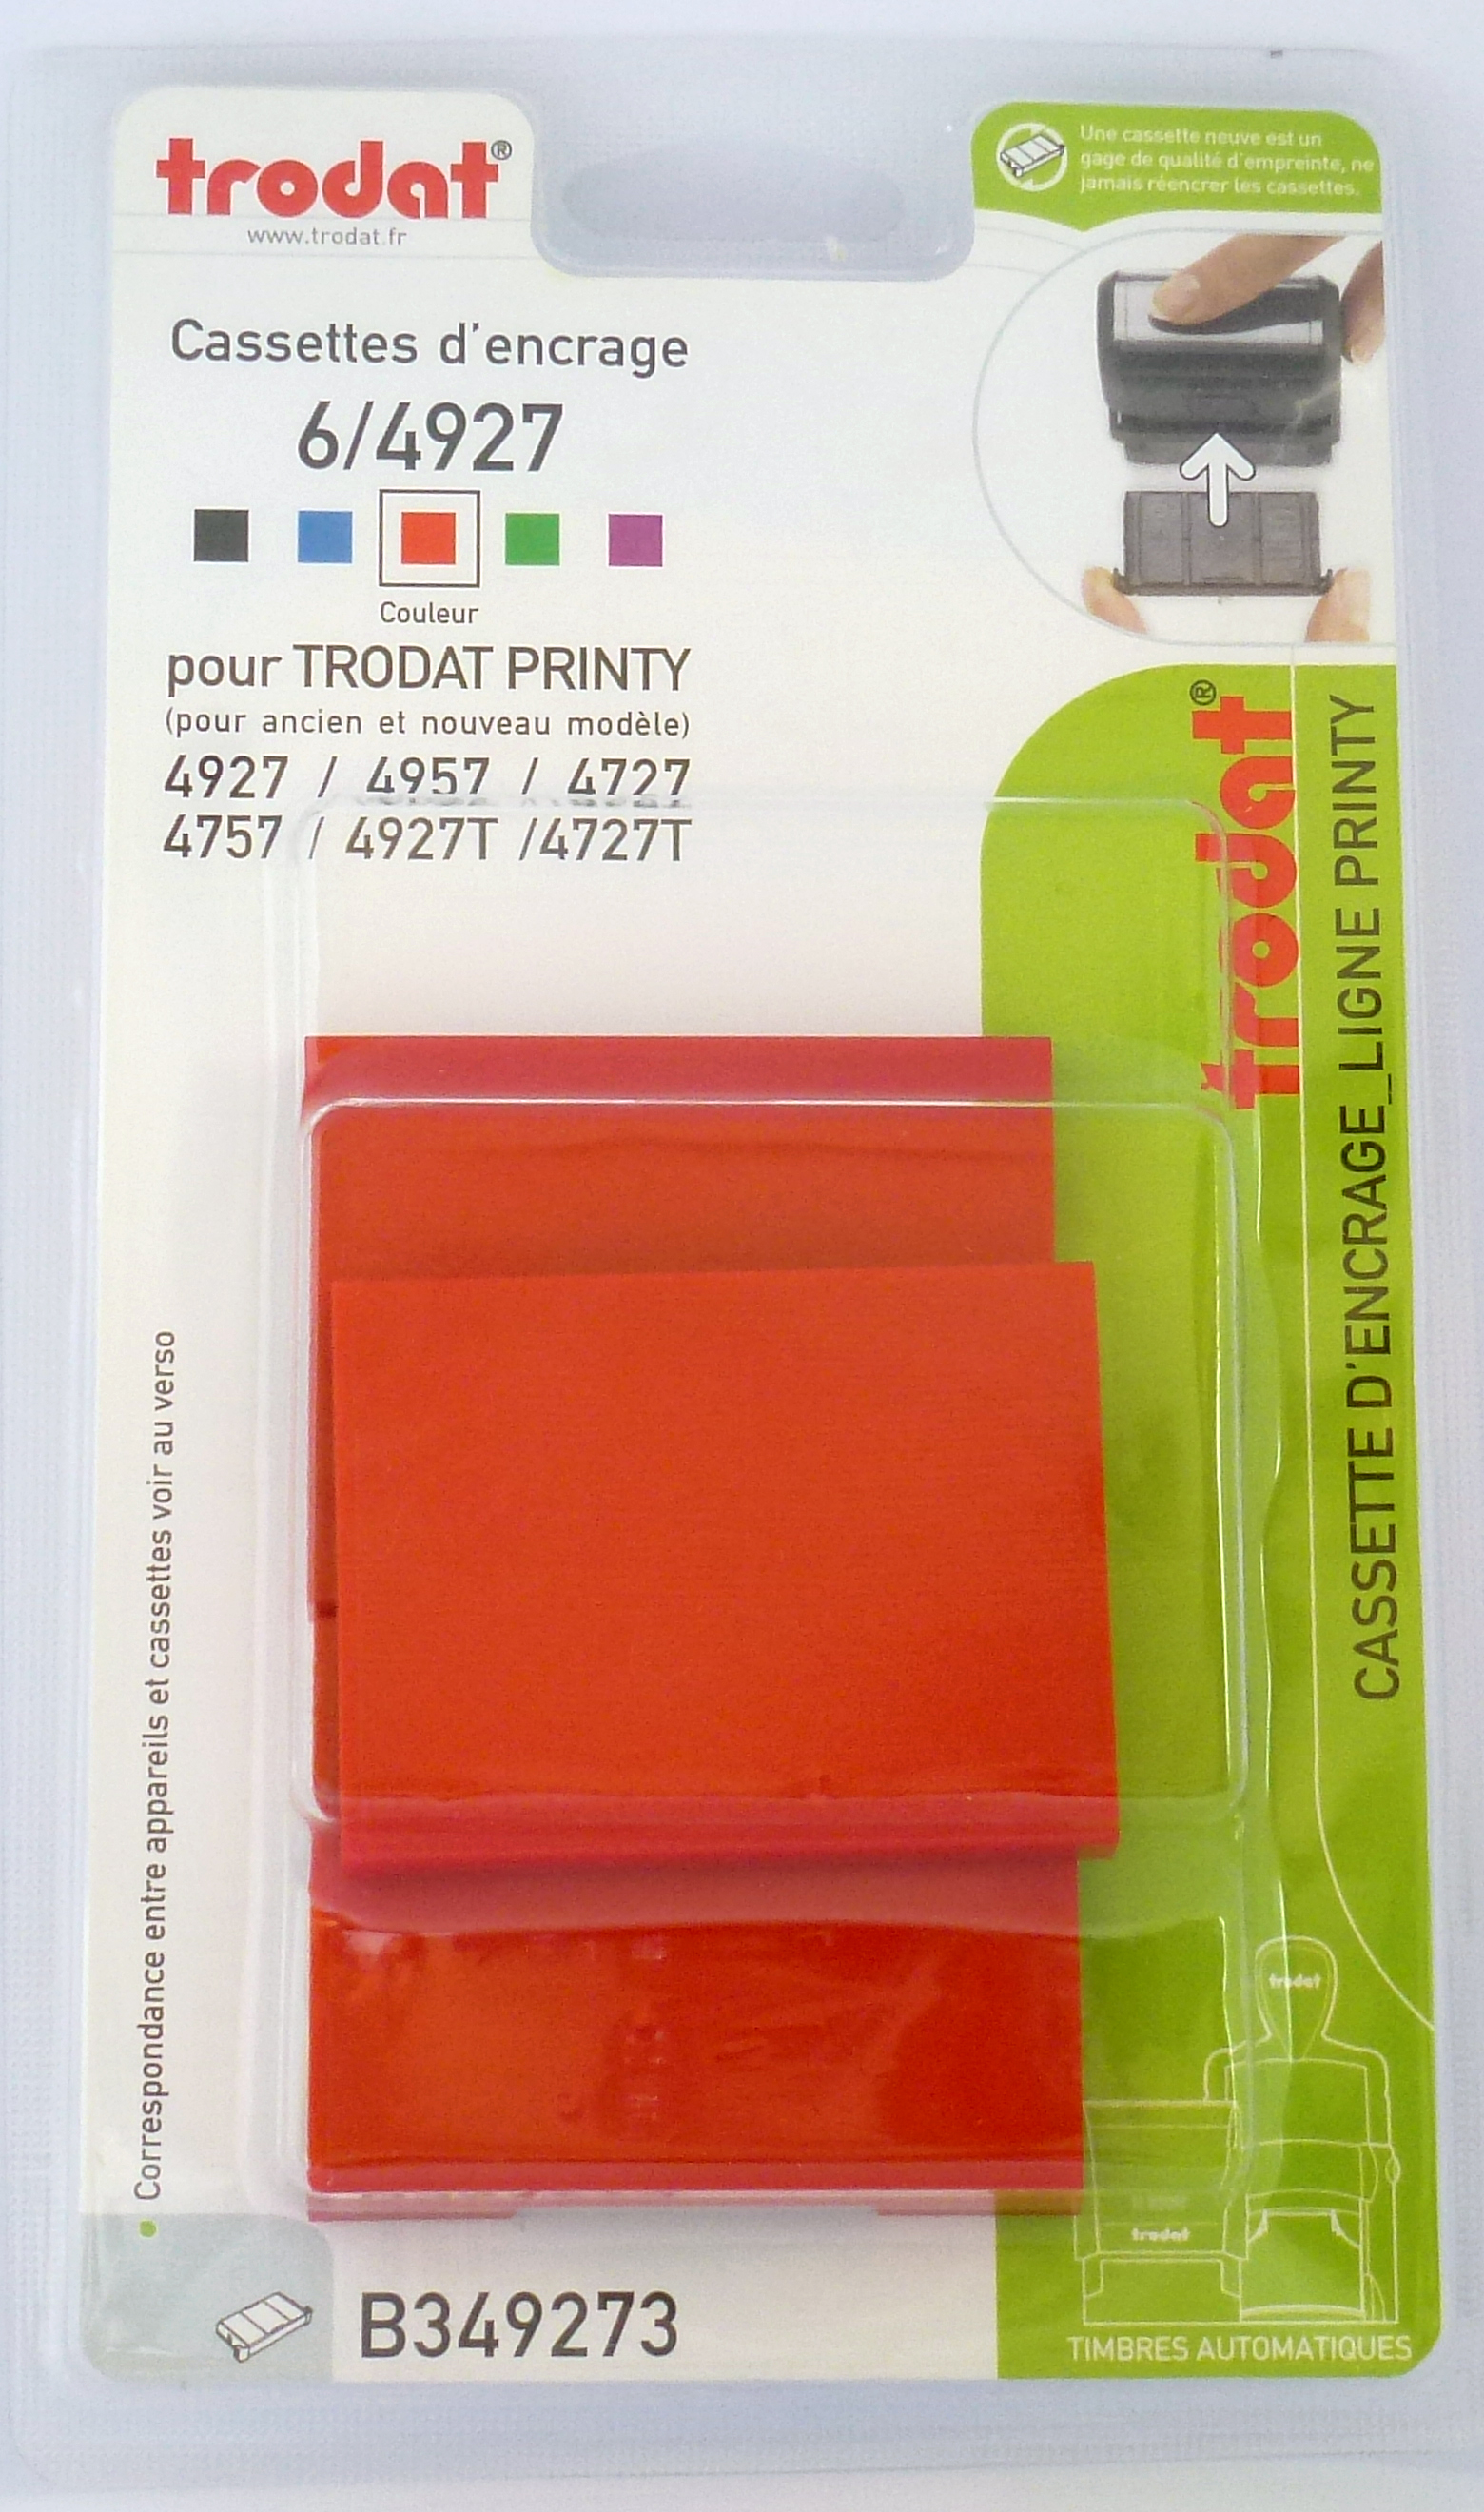 Trodat - 3 Encriers 6/4927 recharges pour tampon Printy 4927/4727/4957 - rouge